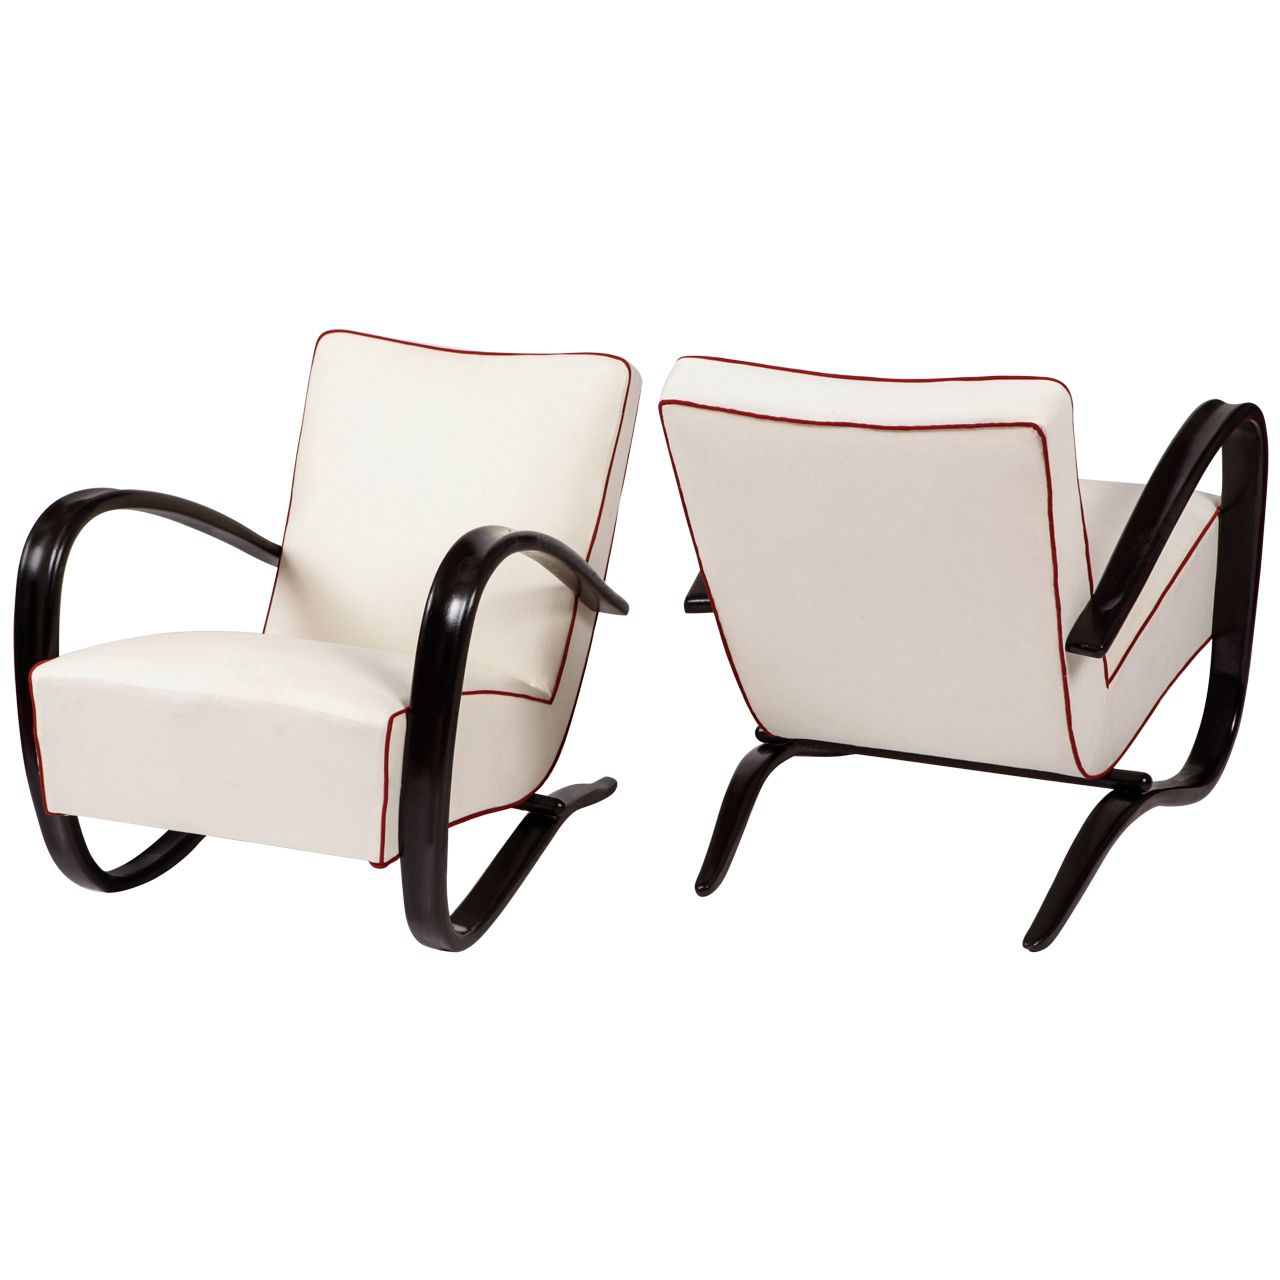 Halabala Jindrich Pair Of Lounge Chairs Model N. H269 By Thonet